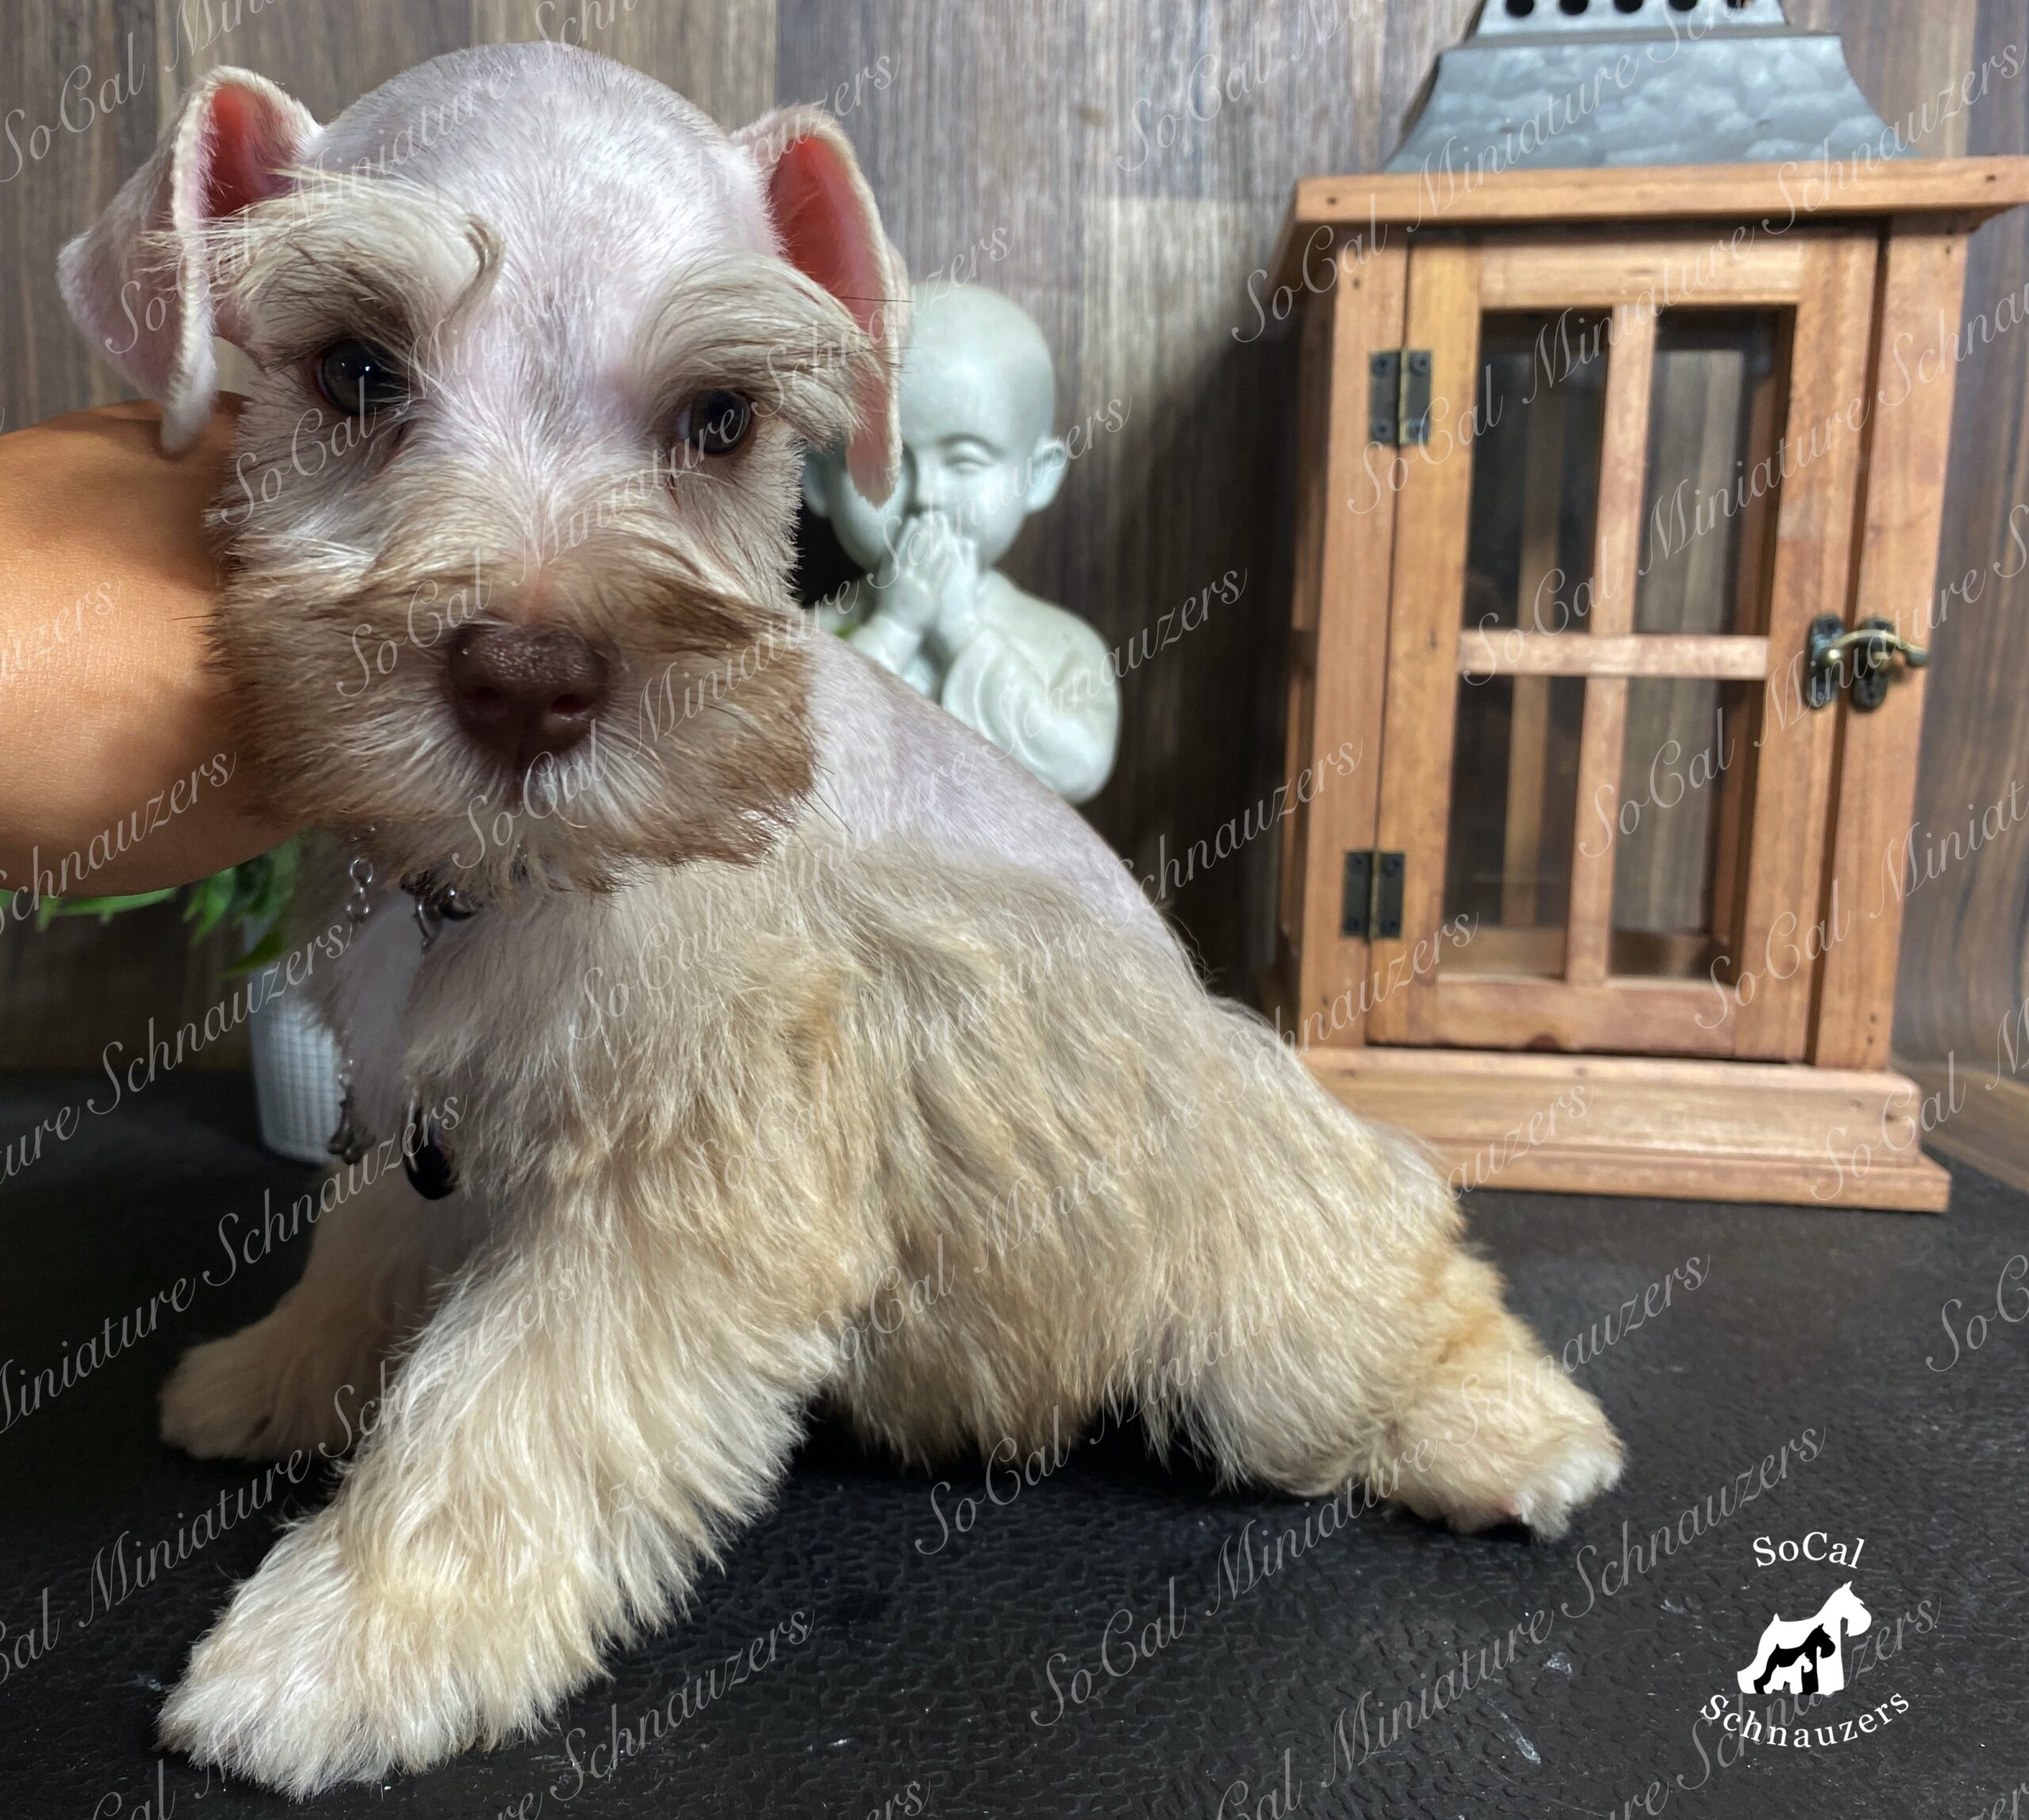 Tiny brown and white schnauzer with statue in background